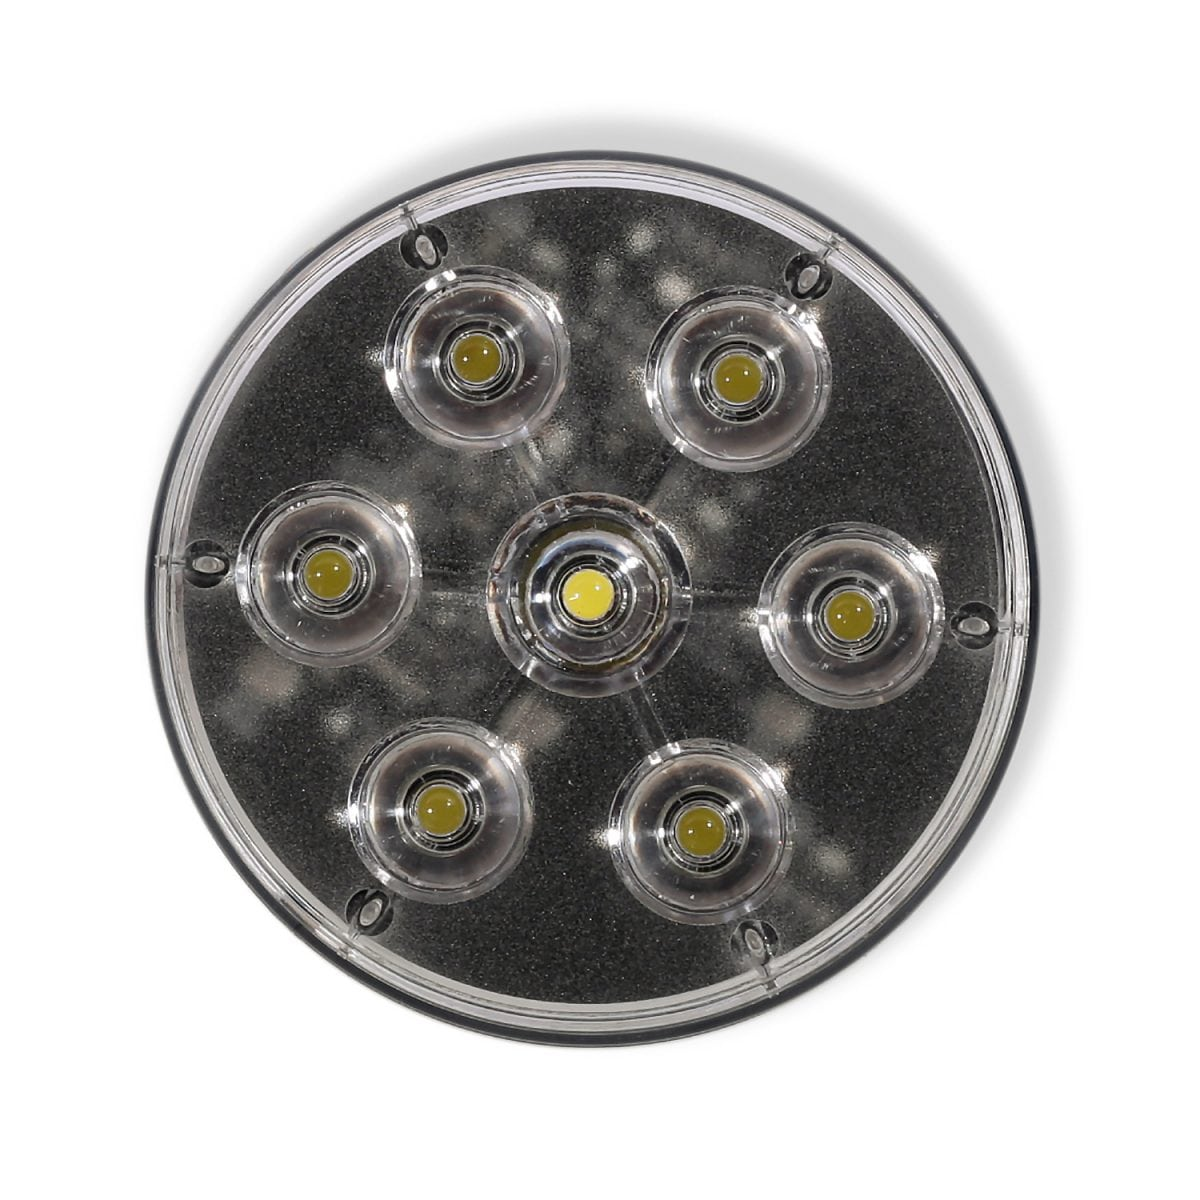 Swift 3.0 TIR 3 Watt 7 LED Emergency Vehicle Fog Light Surface Mount LED